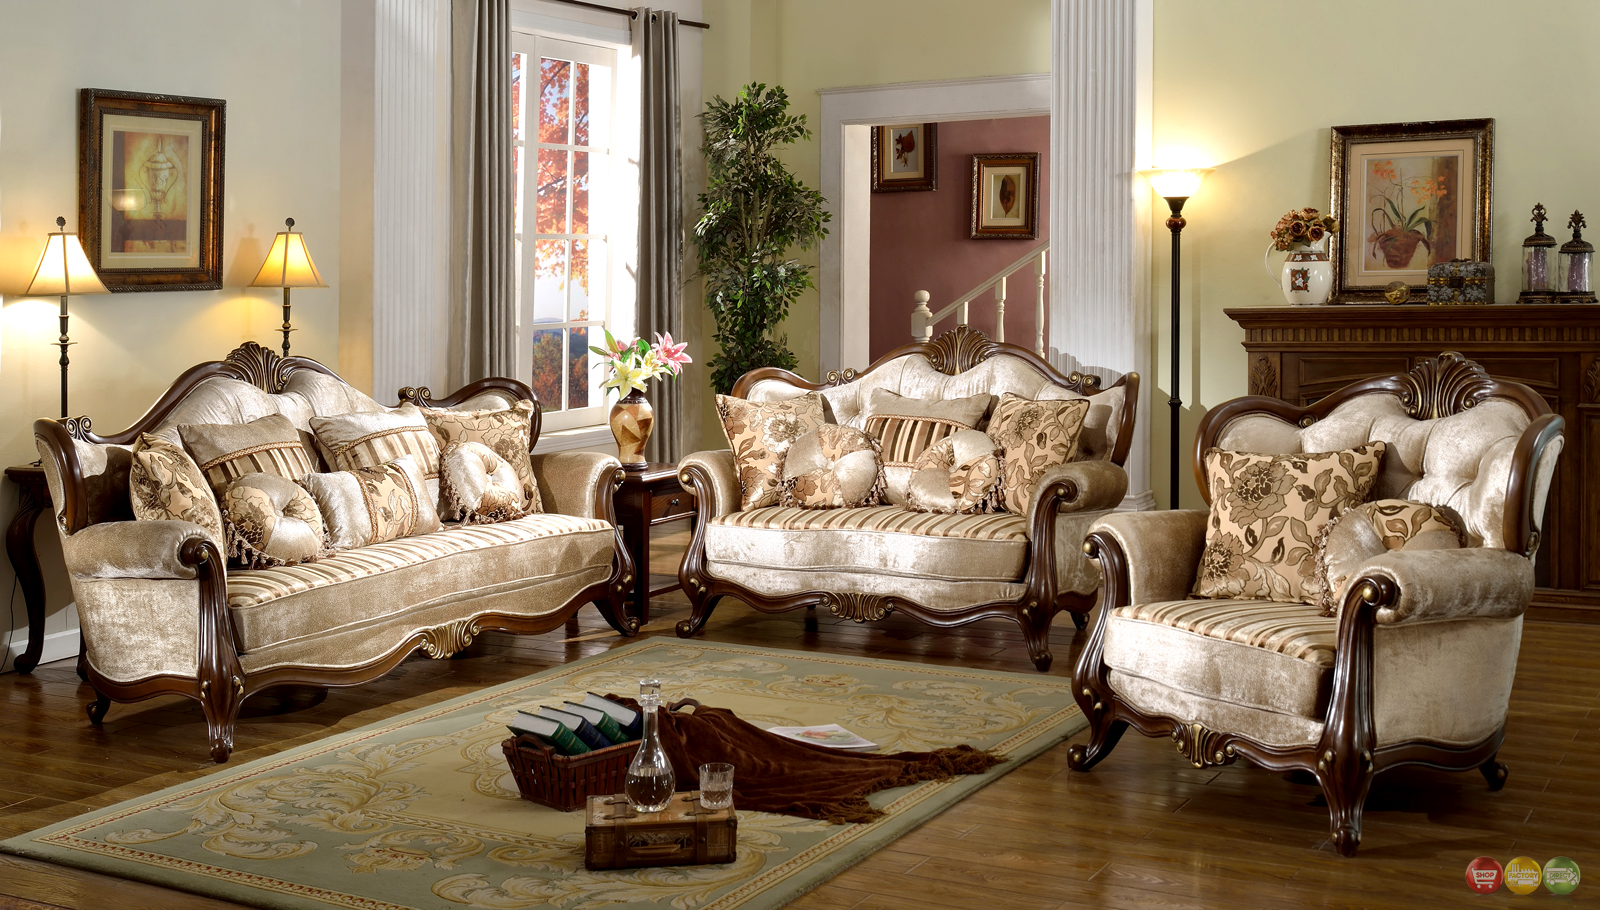 French Provincial Formal Antique Style Living Room Furniture Set Beige Chenille